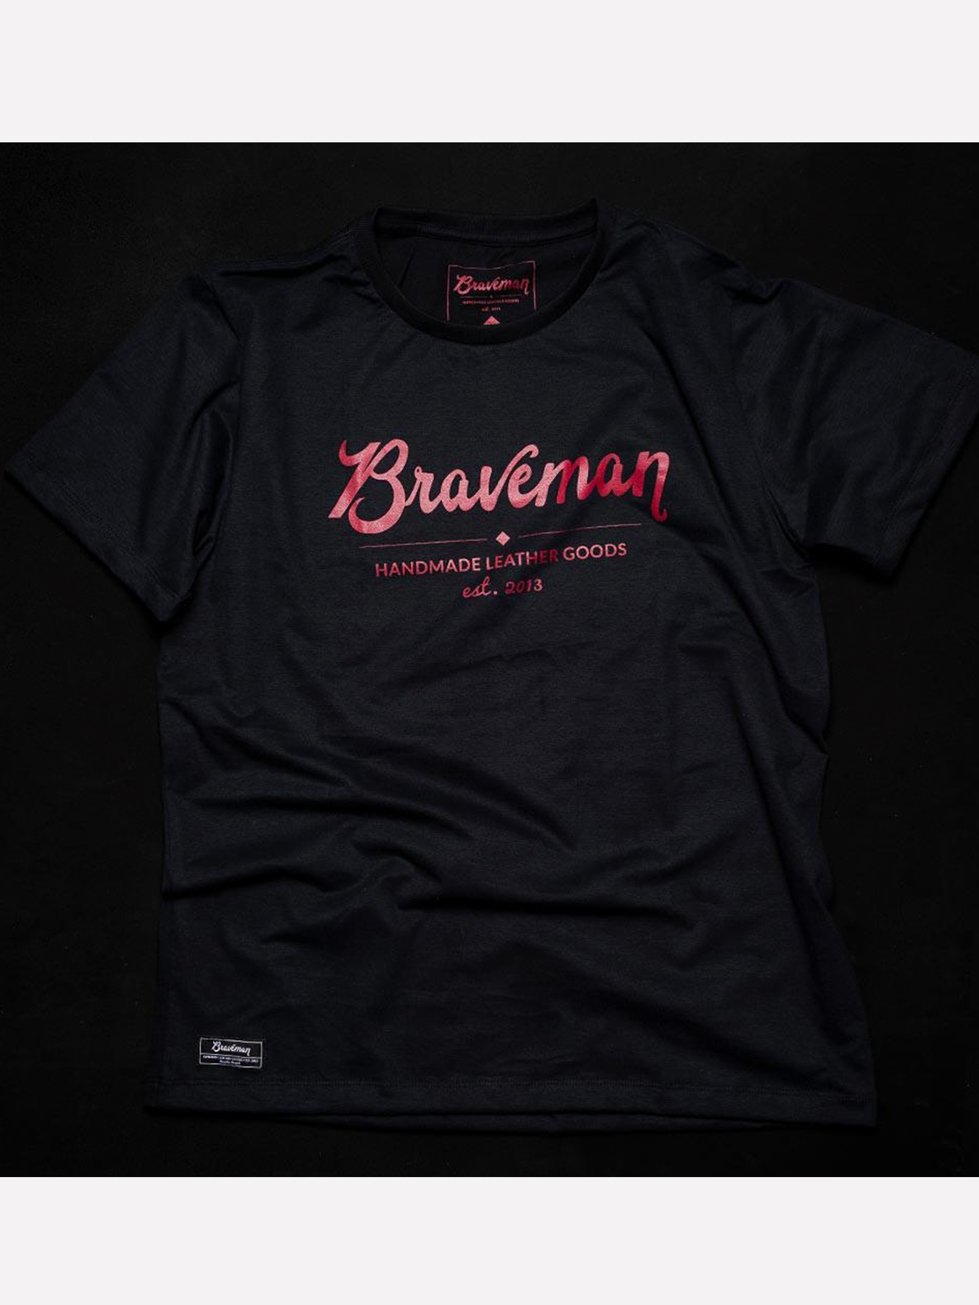 Foto do T-SHIRT Braveman BRAND BLACK BORDEAUX